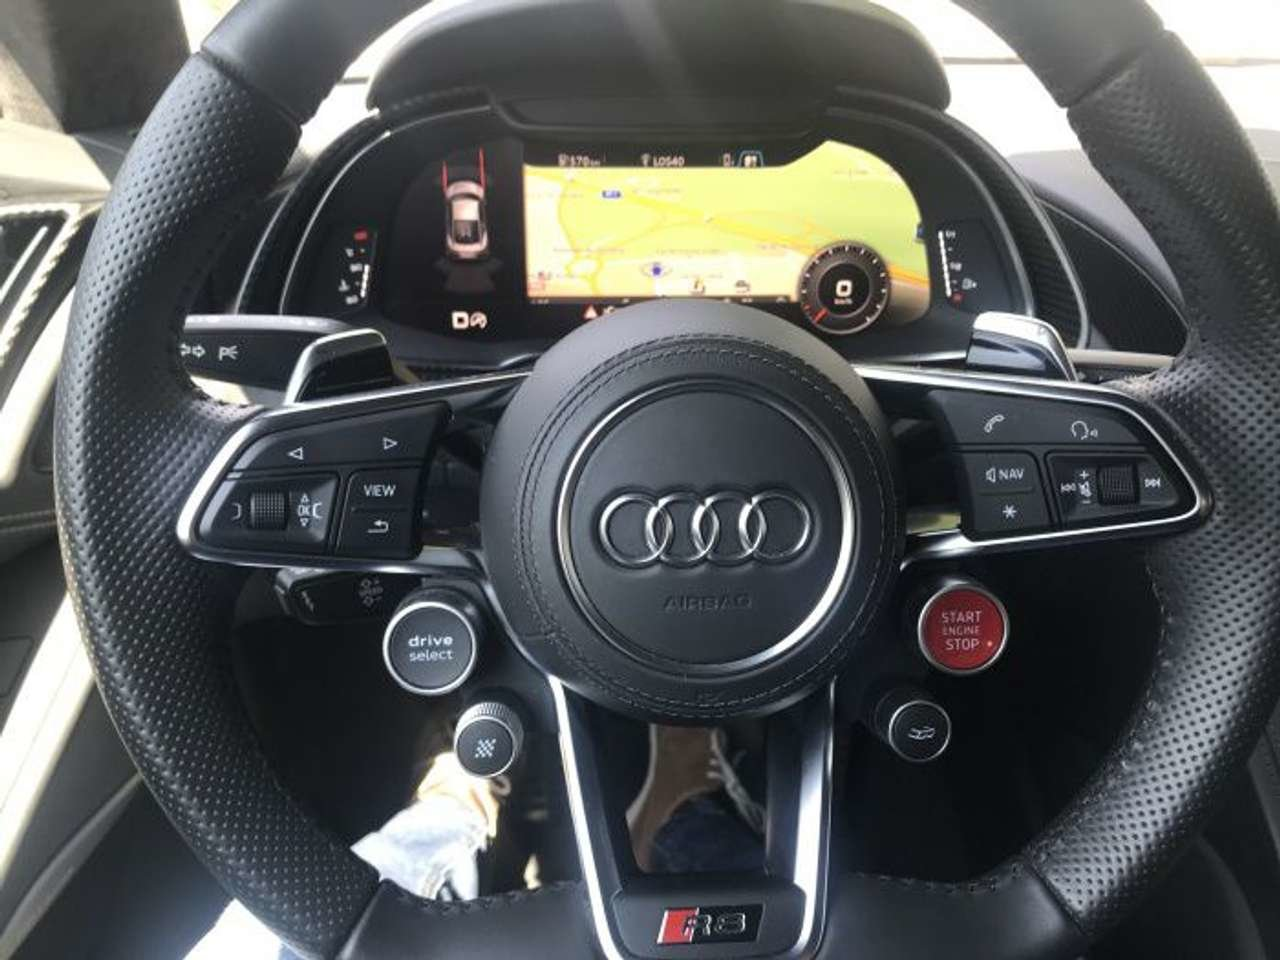 2016 LHD - Audi R8 5.2 V10 Plus - 610PS - only 29.000km For Sale (picture 3 of 6)